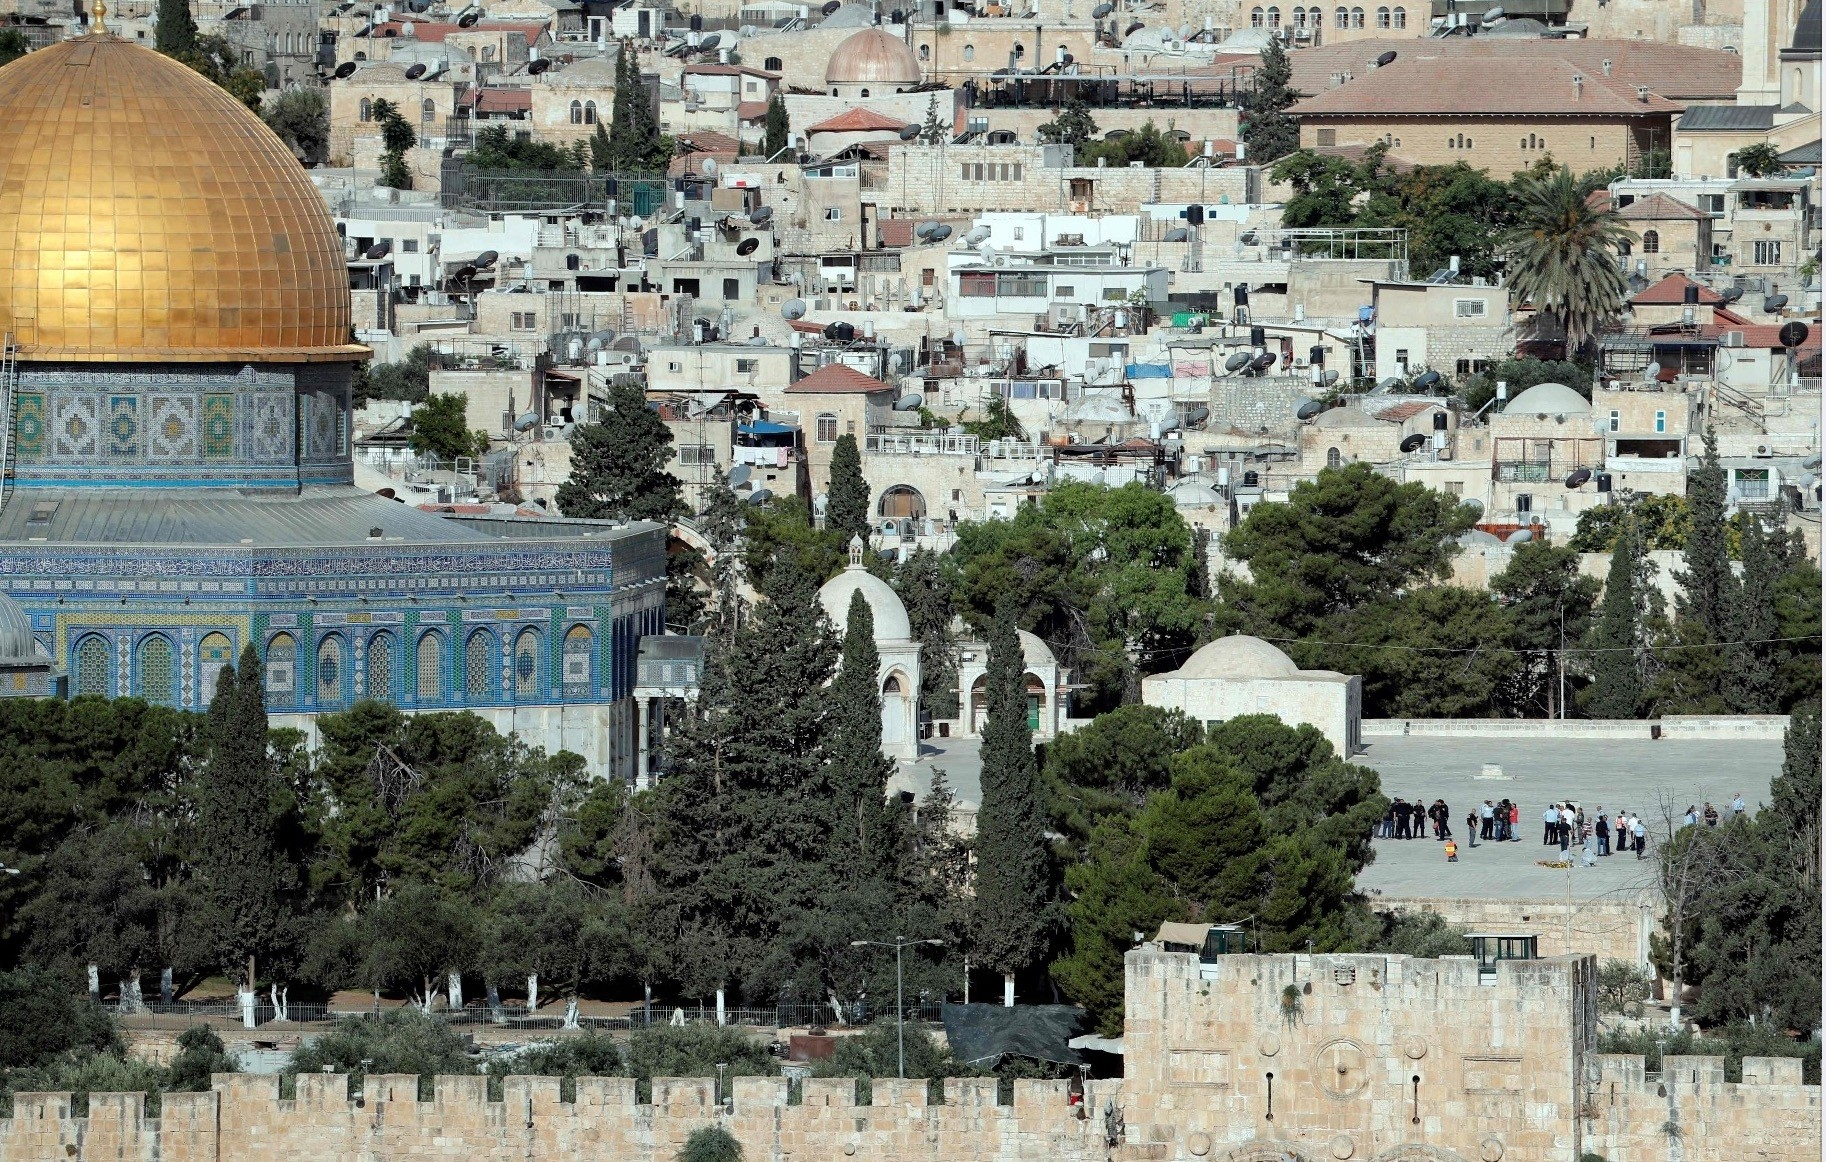 The Al-Aqsa mosque compound in Jerusalem's Old City.